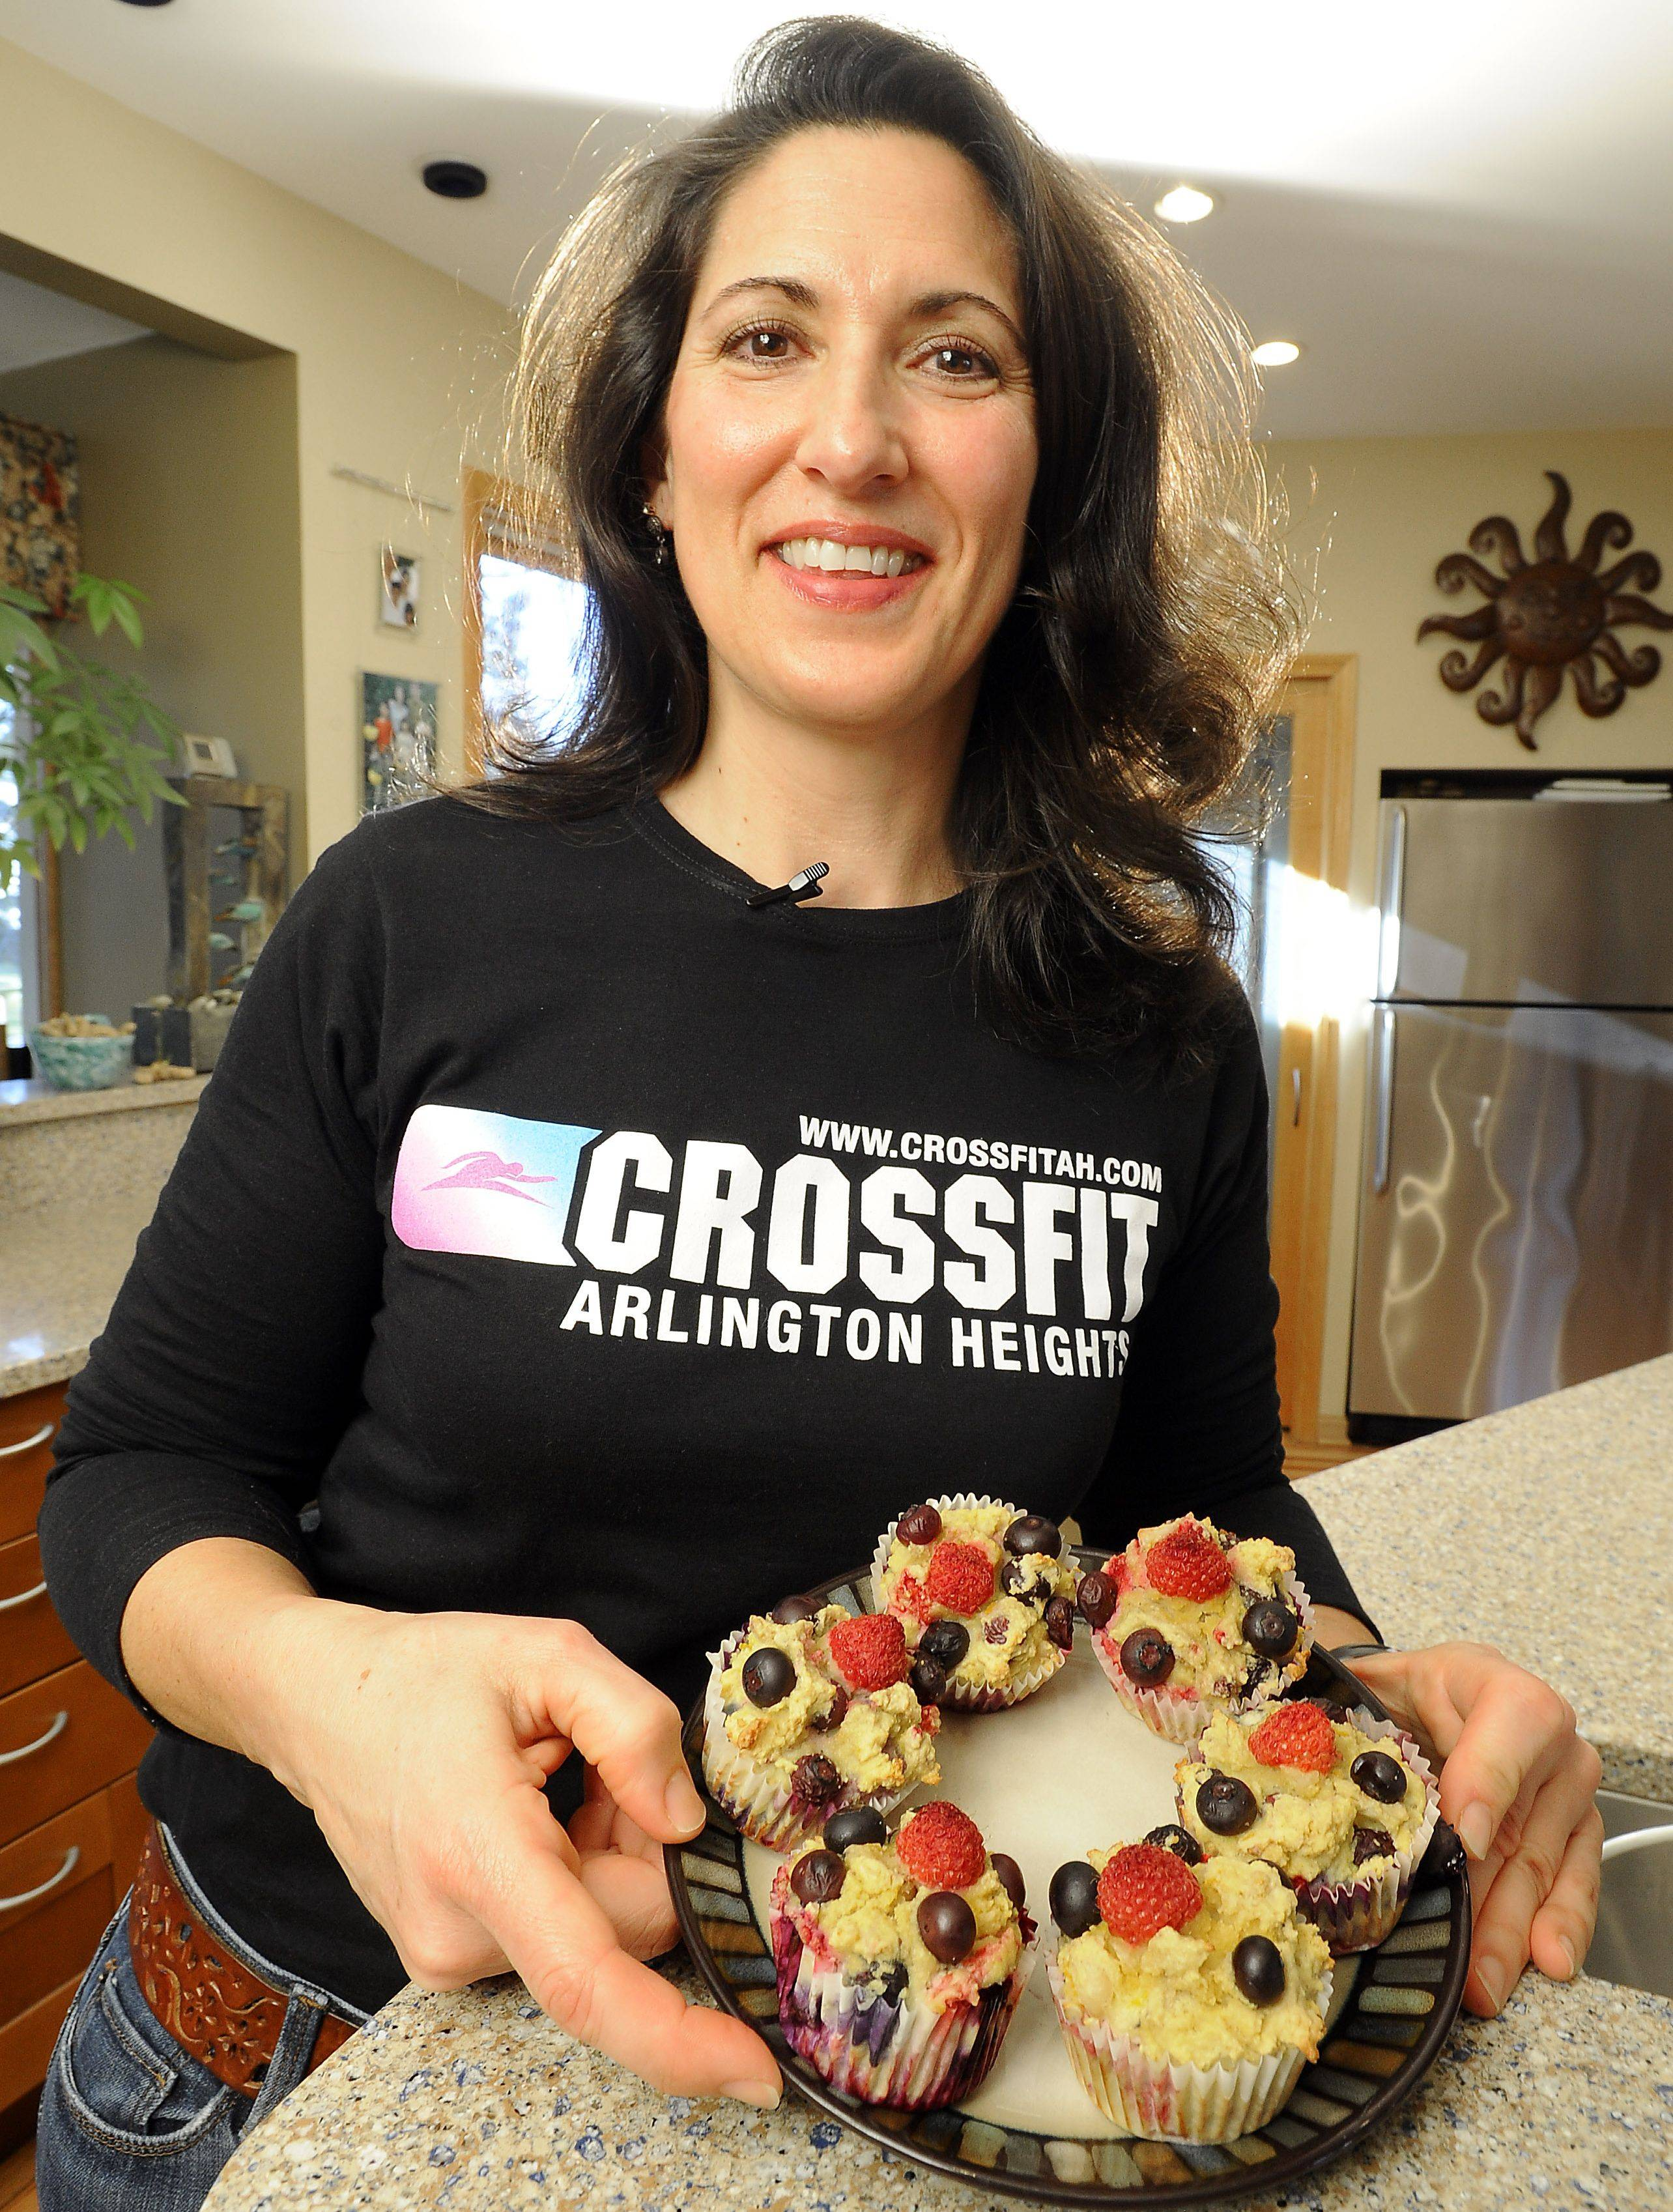 Arlington Heights mom eats like a caveman